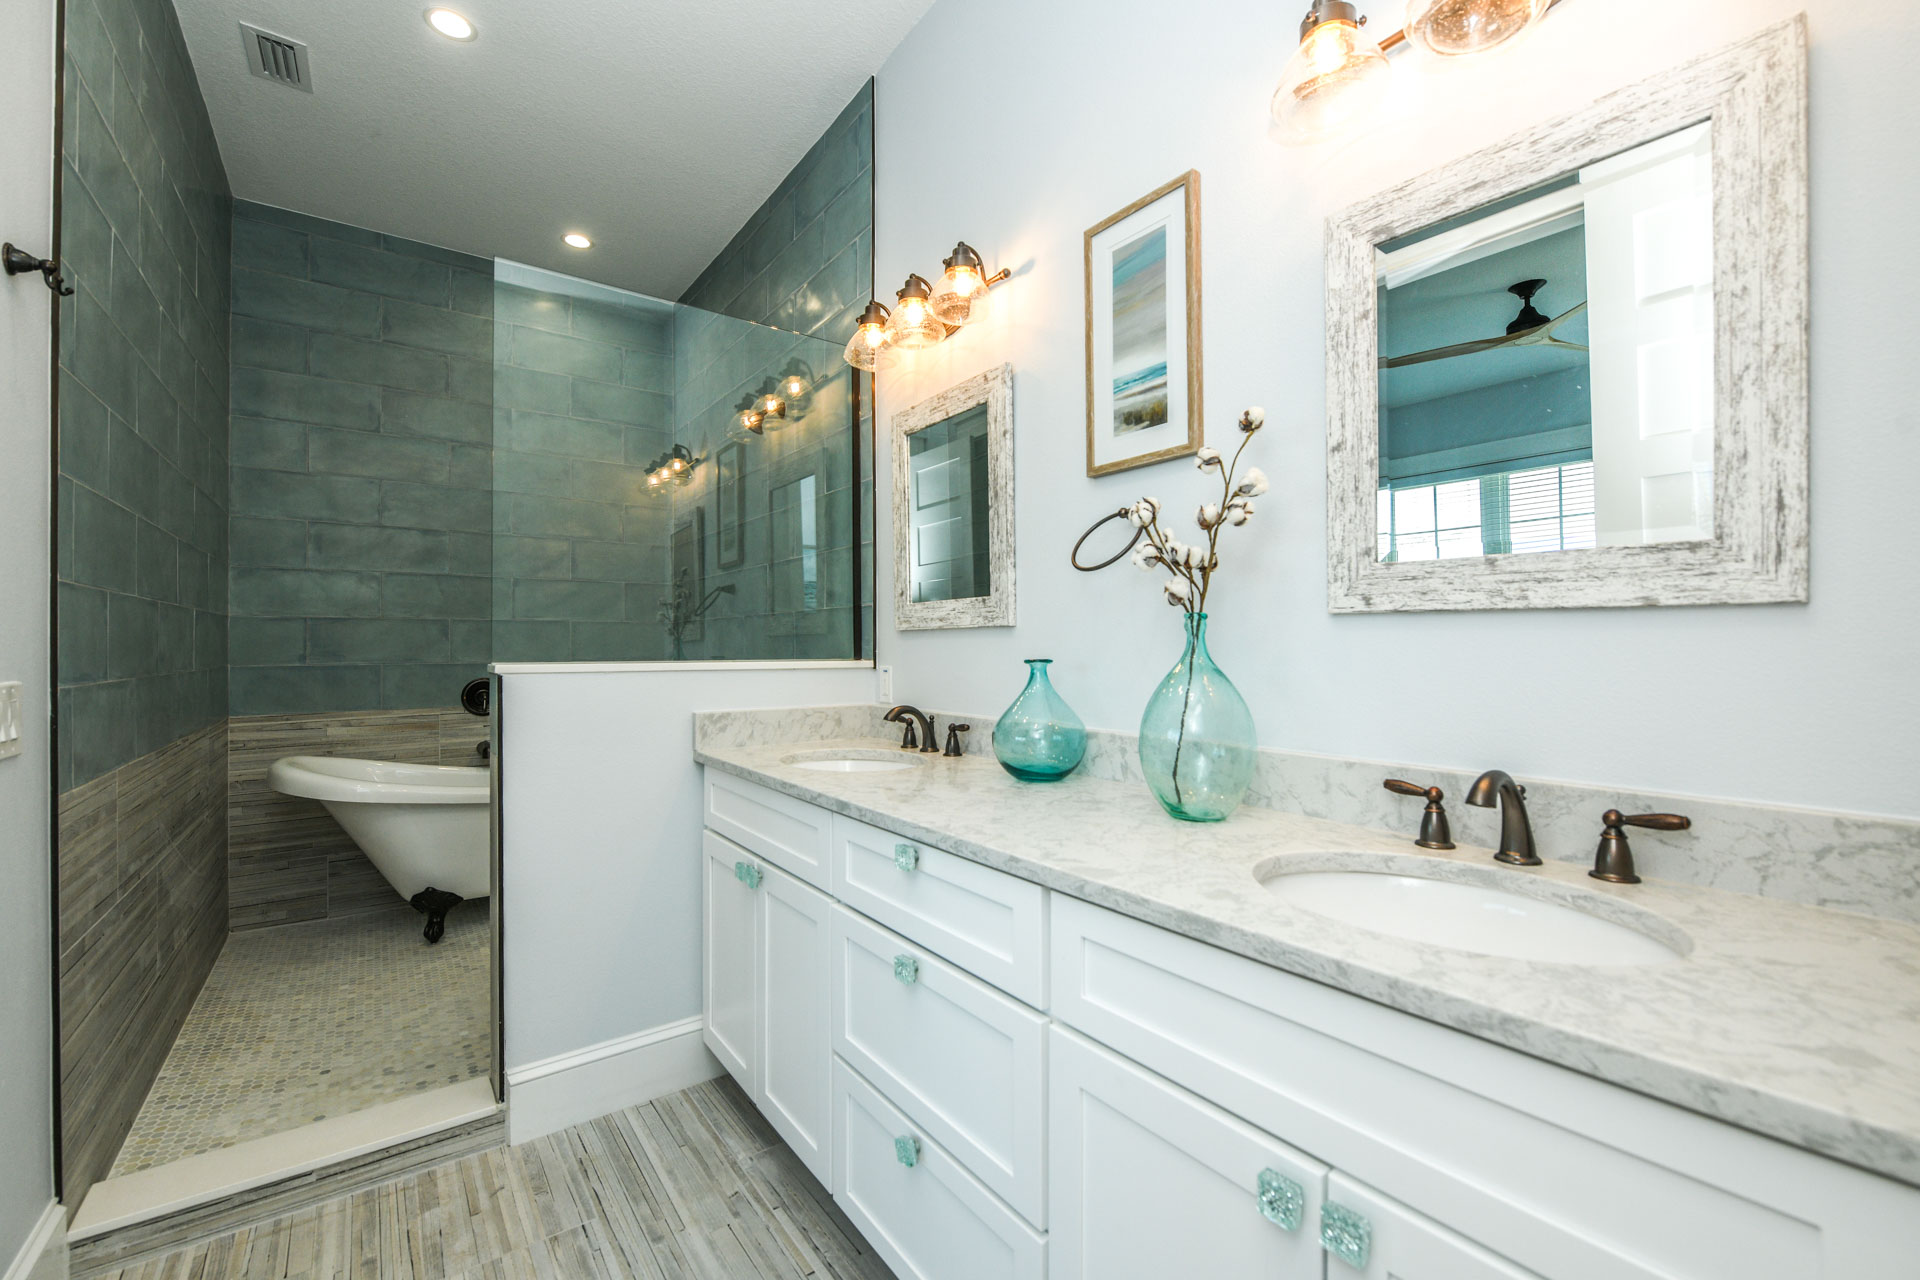 EXAMPLE - Bathroom with Tub in Walk In Shower